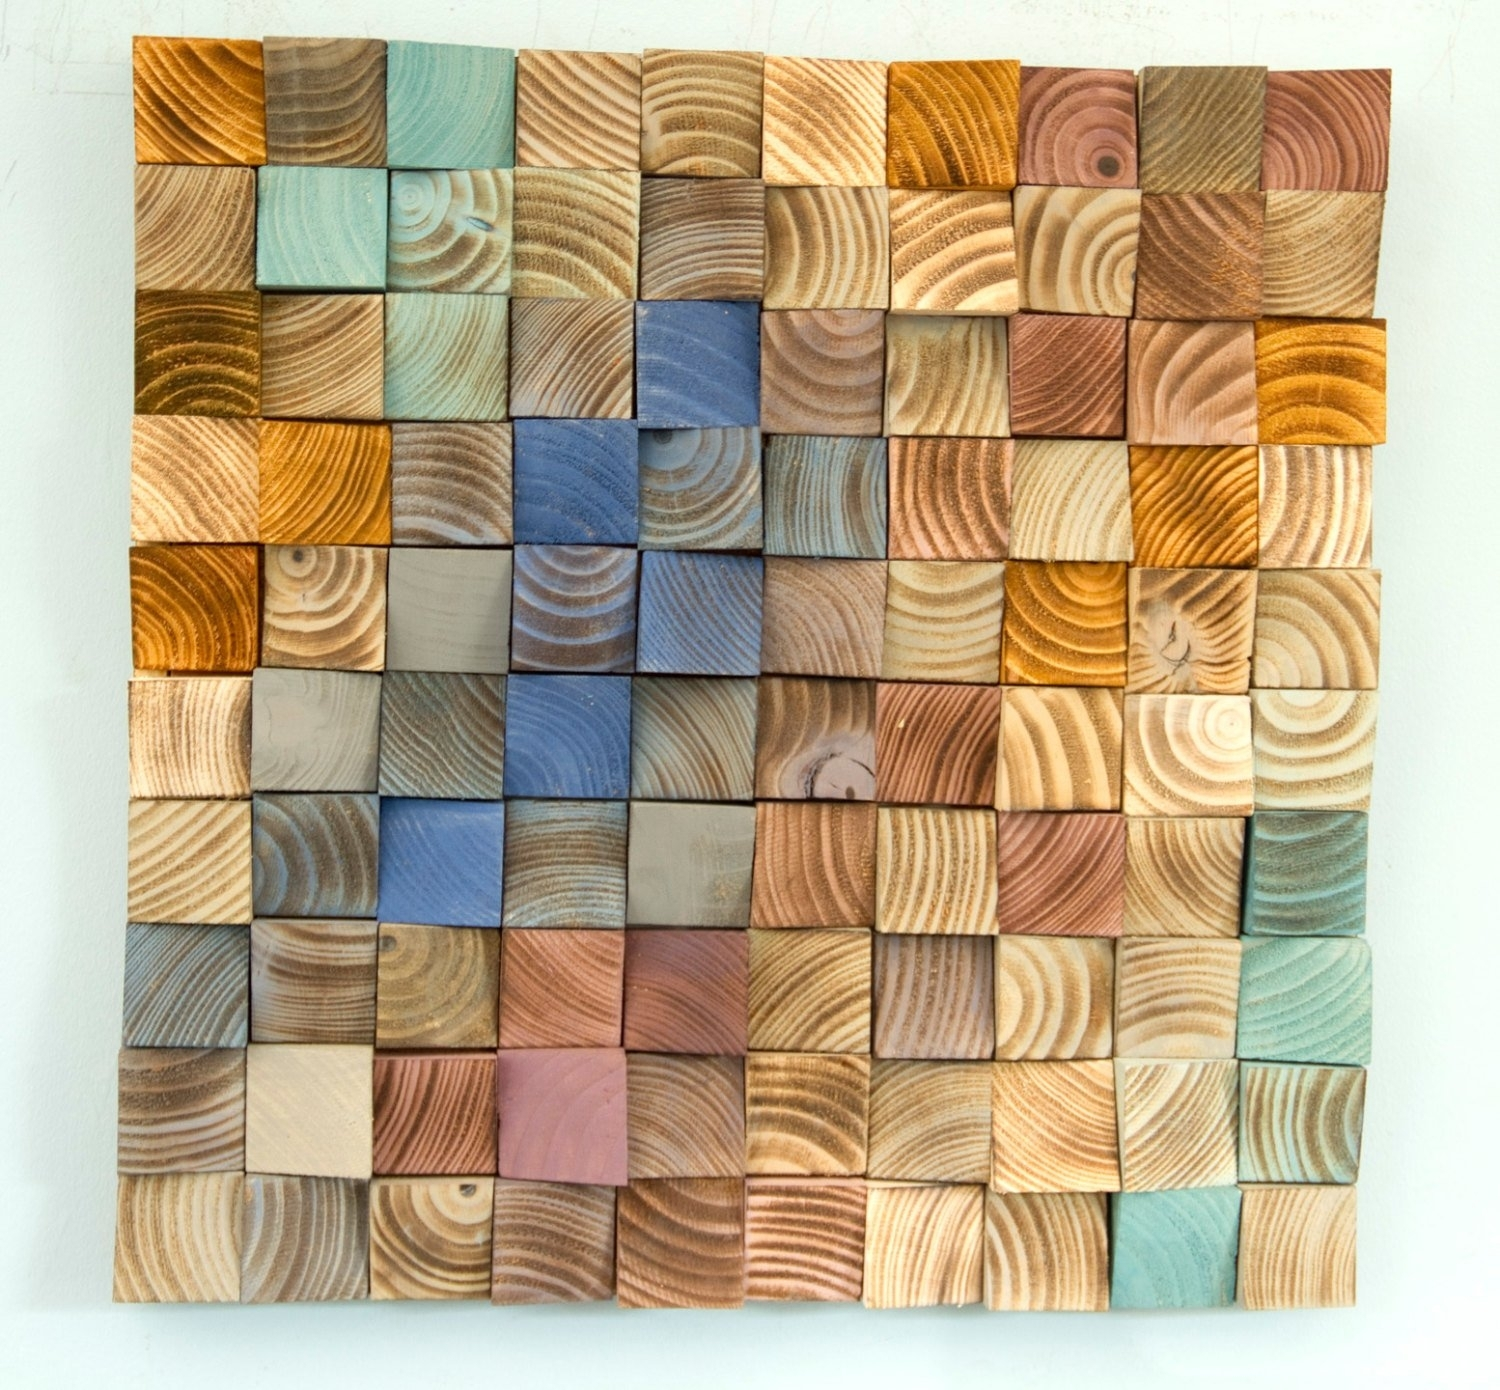 Wood Wall Art, Mosaic Wodd Art, Geometric Wall Art Throughout Current Geometric Wall Art (View 20 of 20)